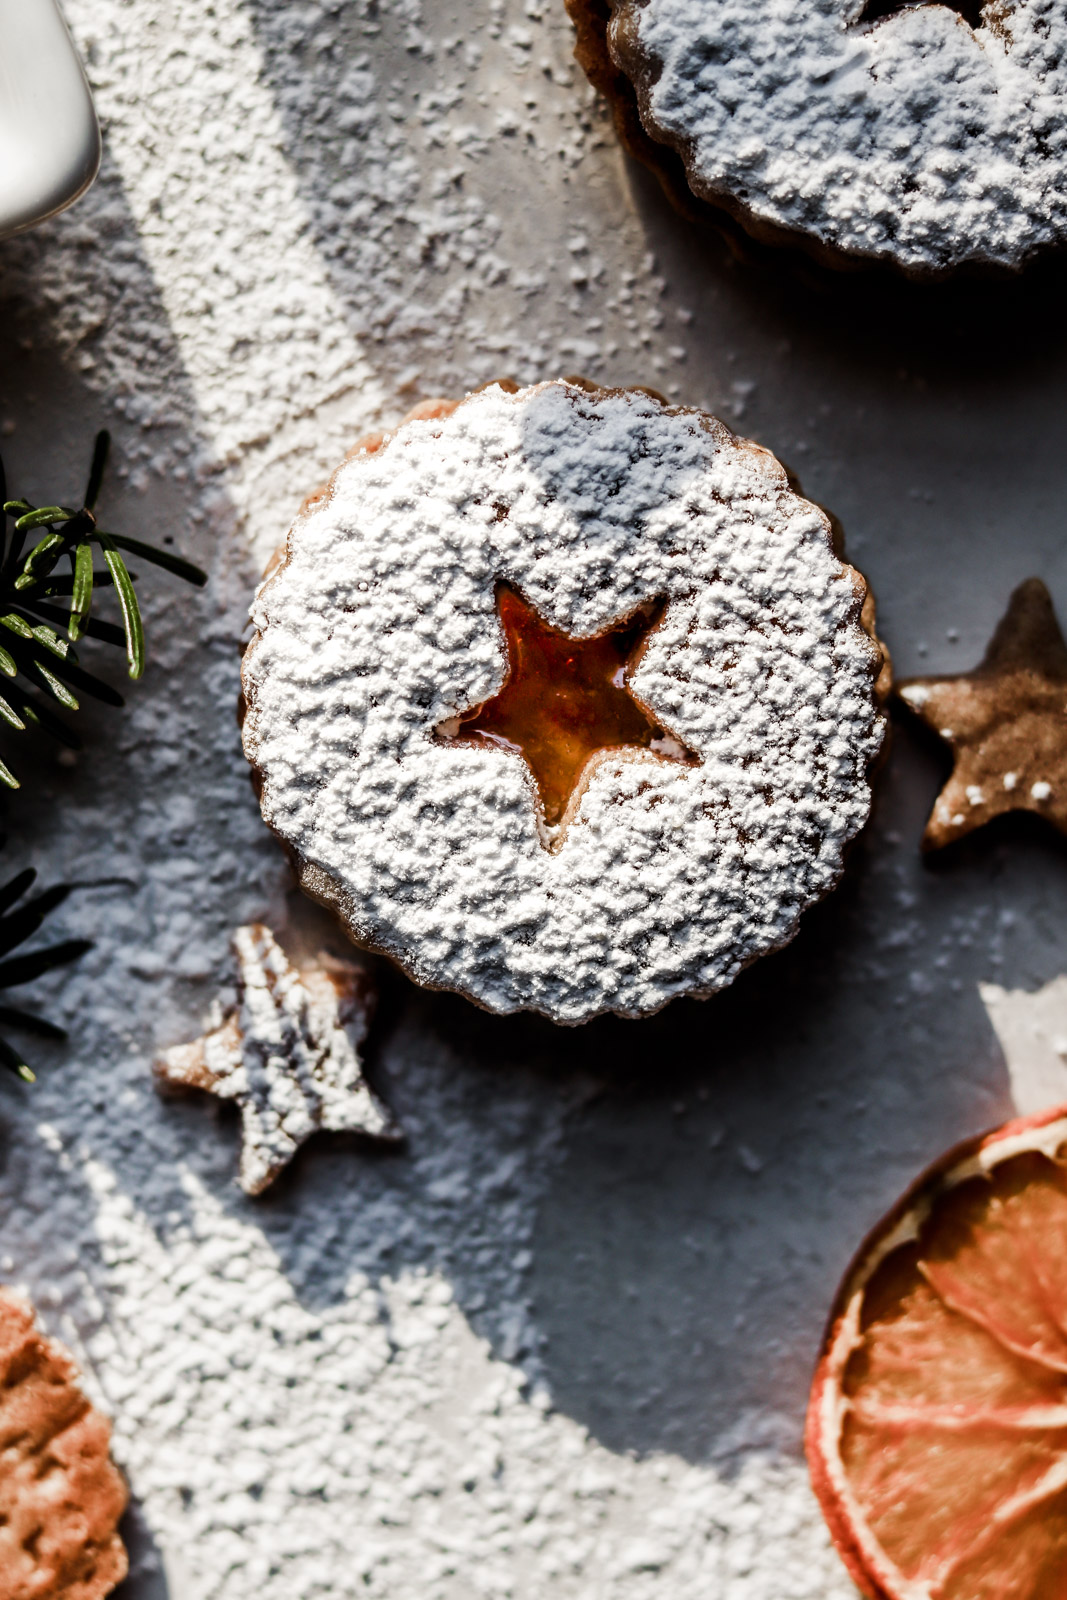 Spiced linzer cookie with a star shaped cut-out revealing the clementine marmalade inside, covered with icing sugar